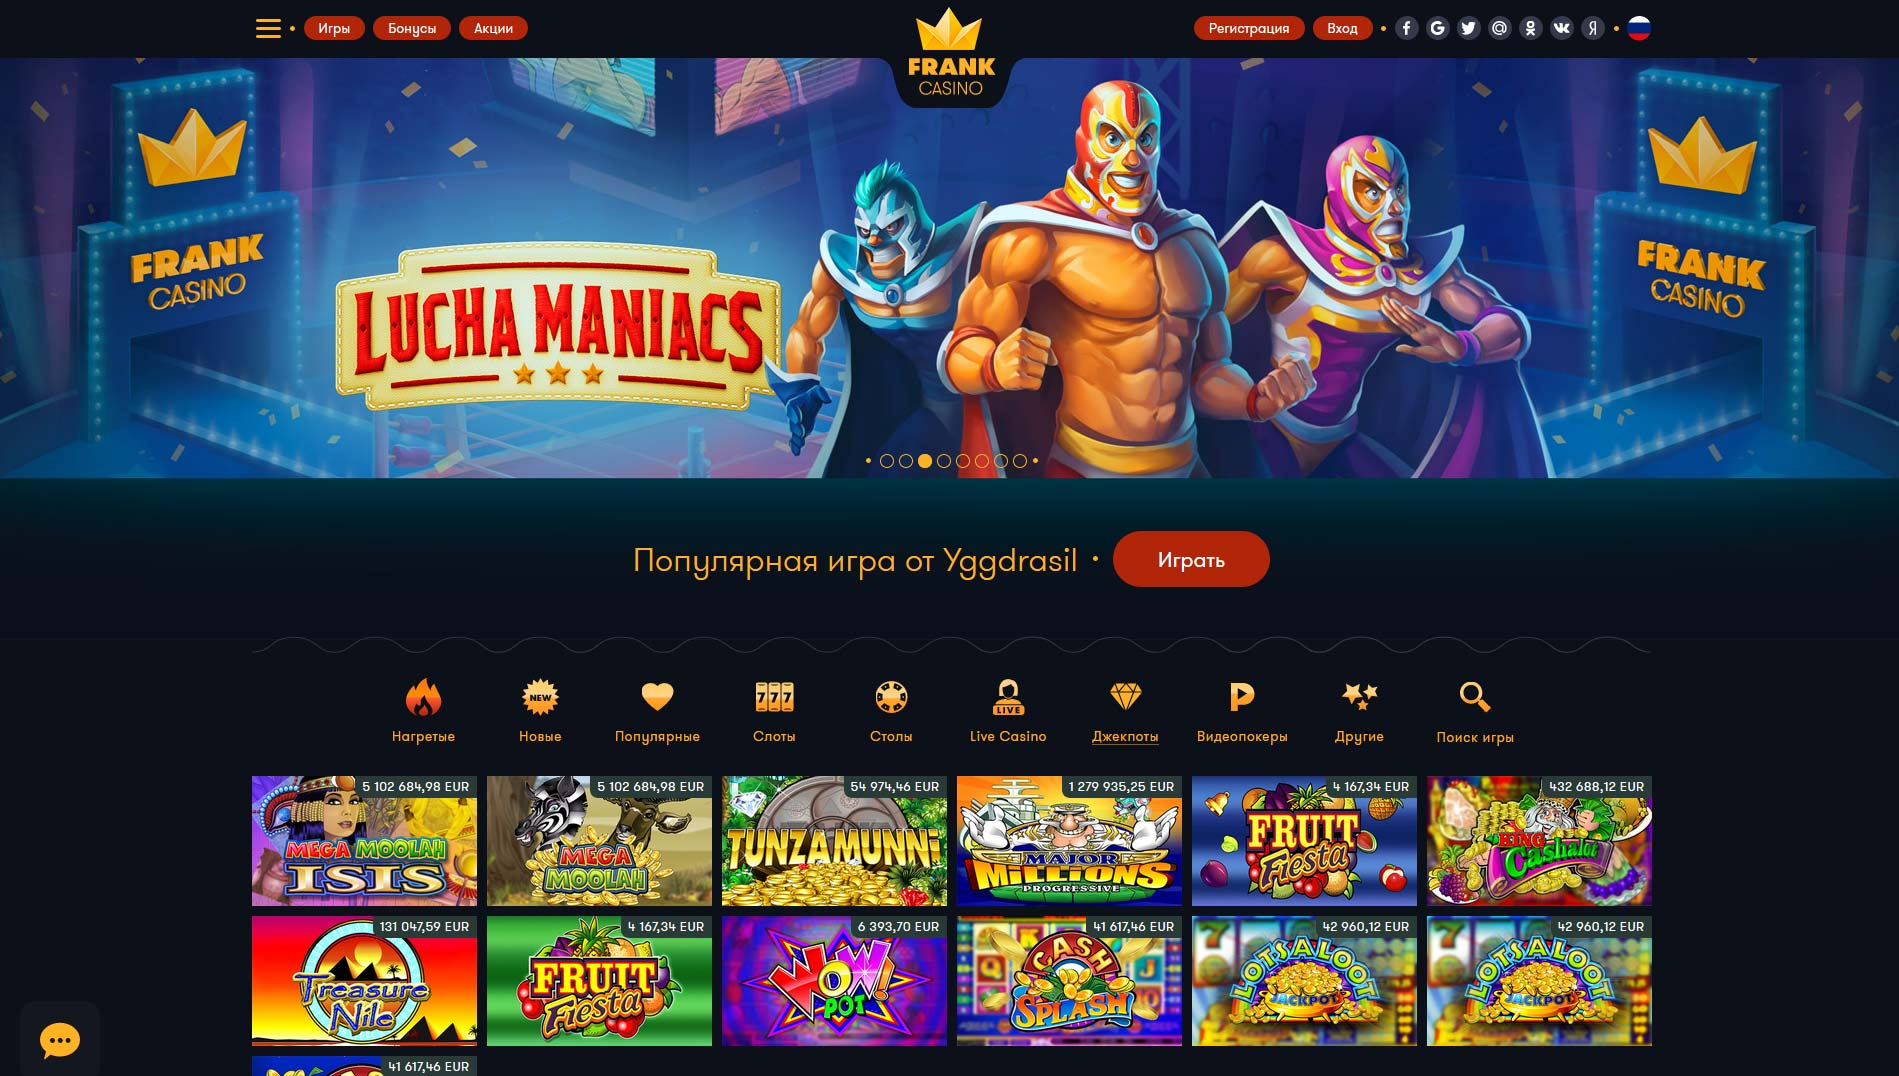 https neverplay ru 4 frank casino html